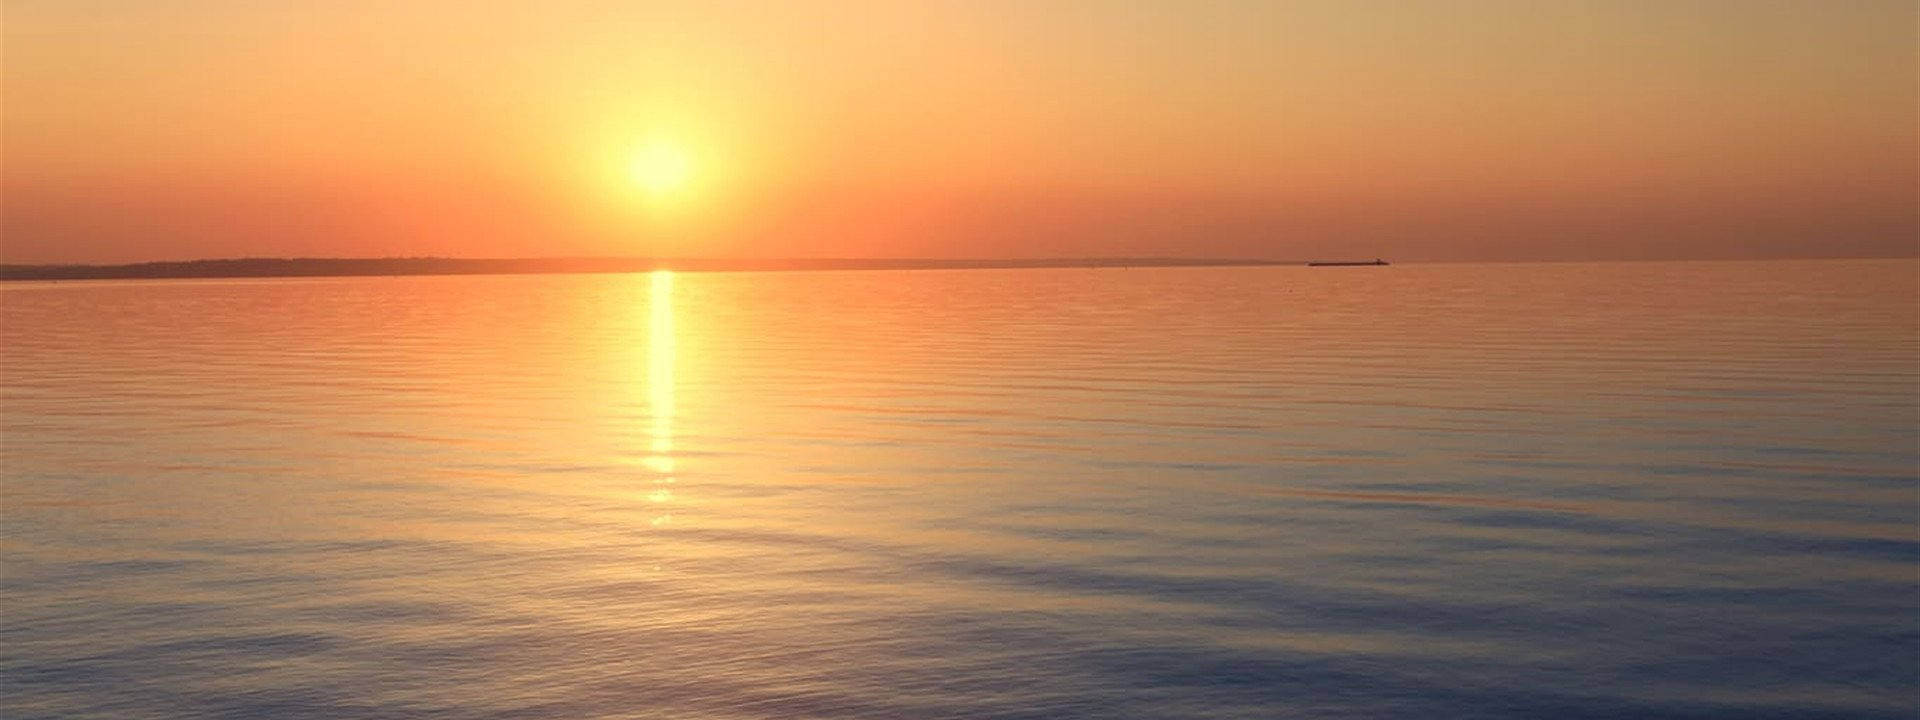 Services | Van Orsdel Family Funeral Chapels and Crematory Scattering at Sea Miami, FL